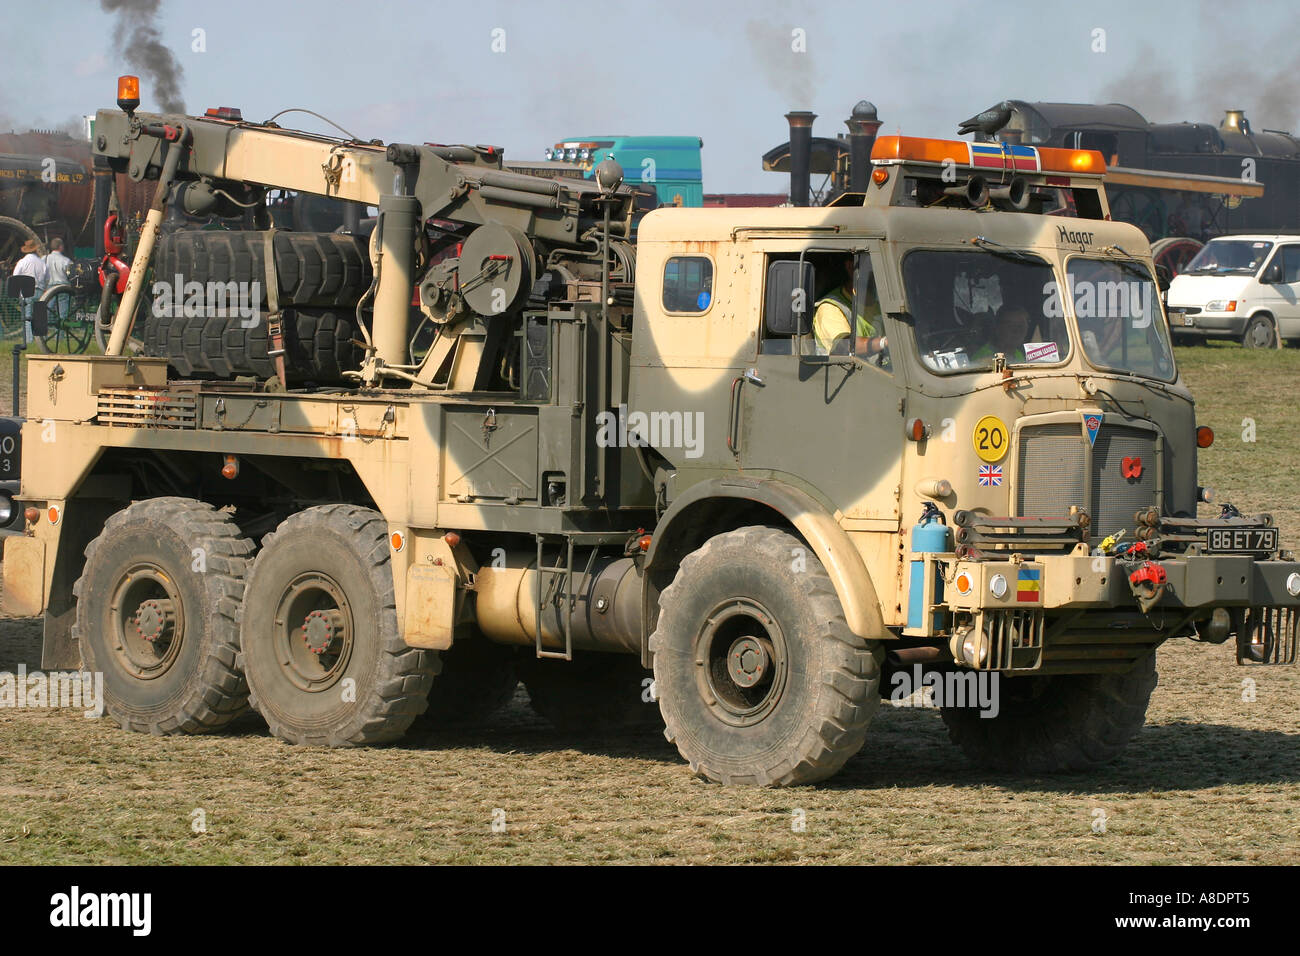 AEC Militant recovery vehicle at Dorset Steam Fair, England, UK. - Stock Image